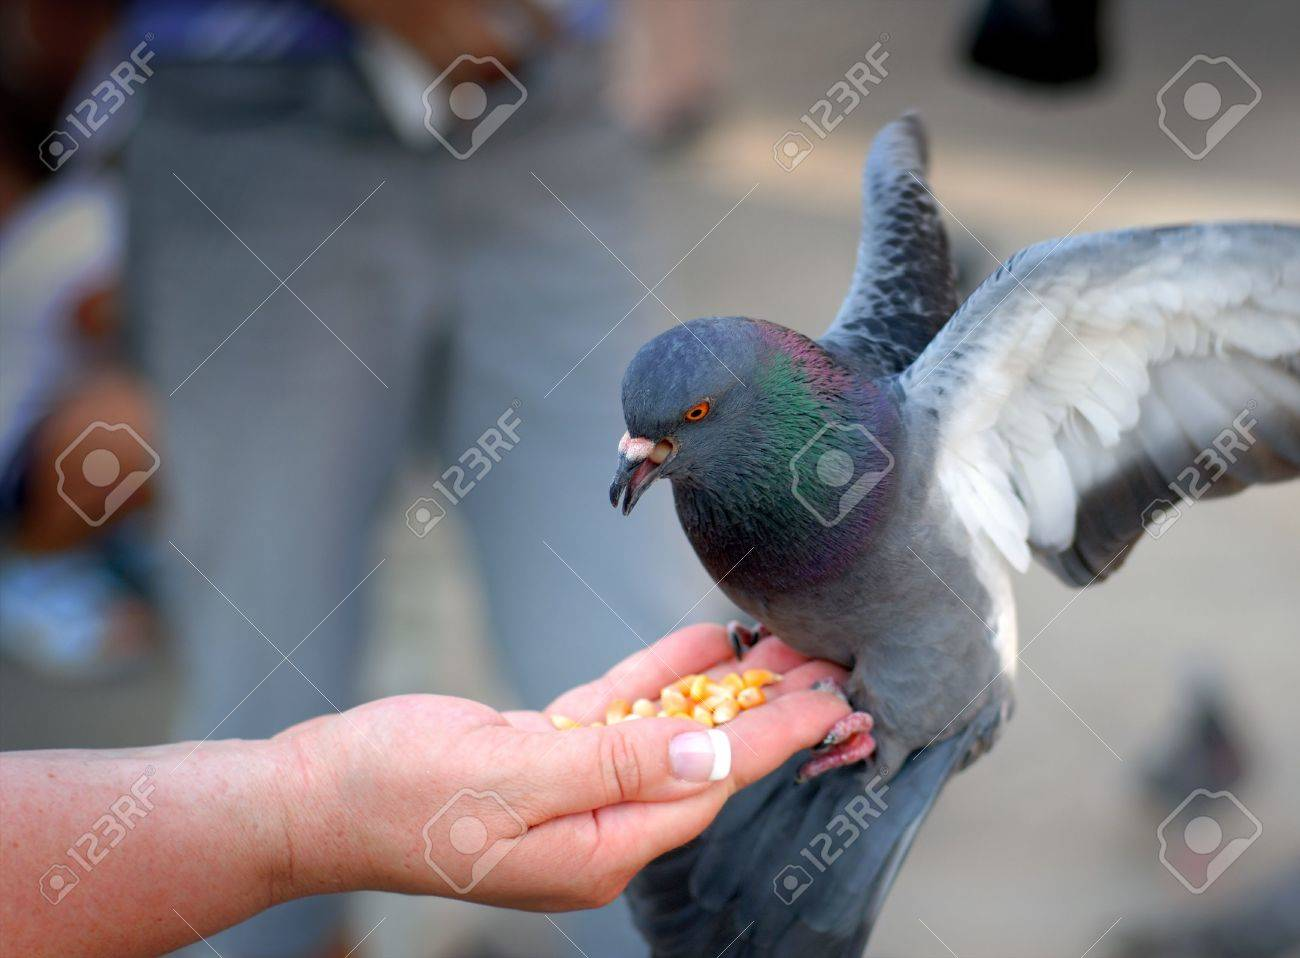 Pigeon feeding and balancing on woman's hand in St. Mark's Square in Venice, Italy. Stock Photo - 1780781